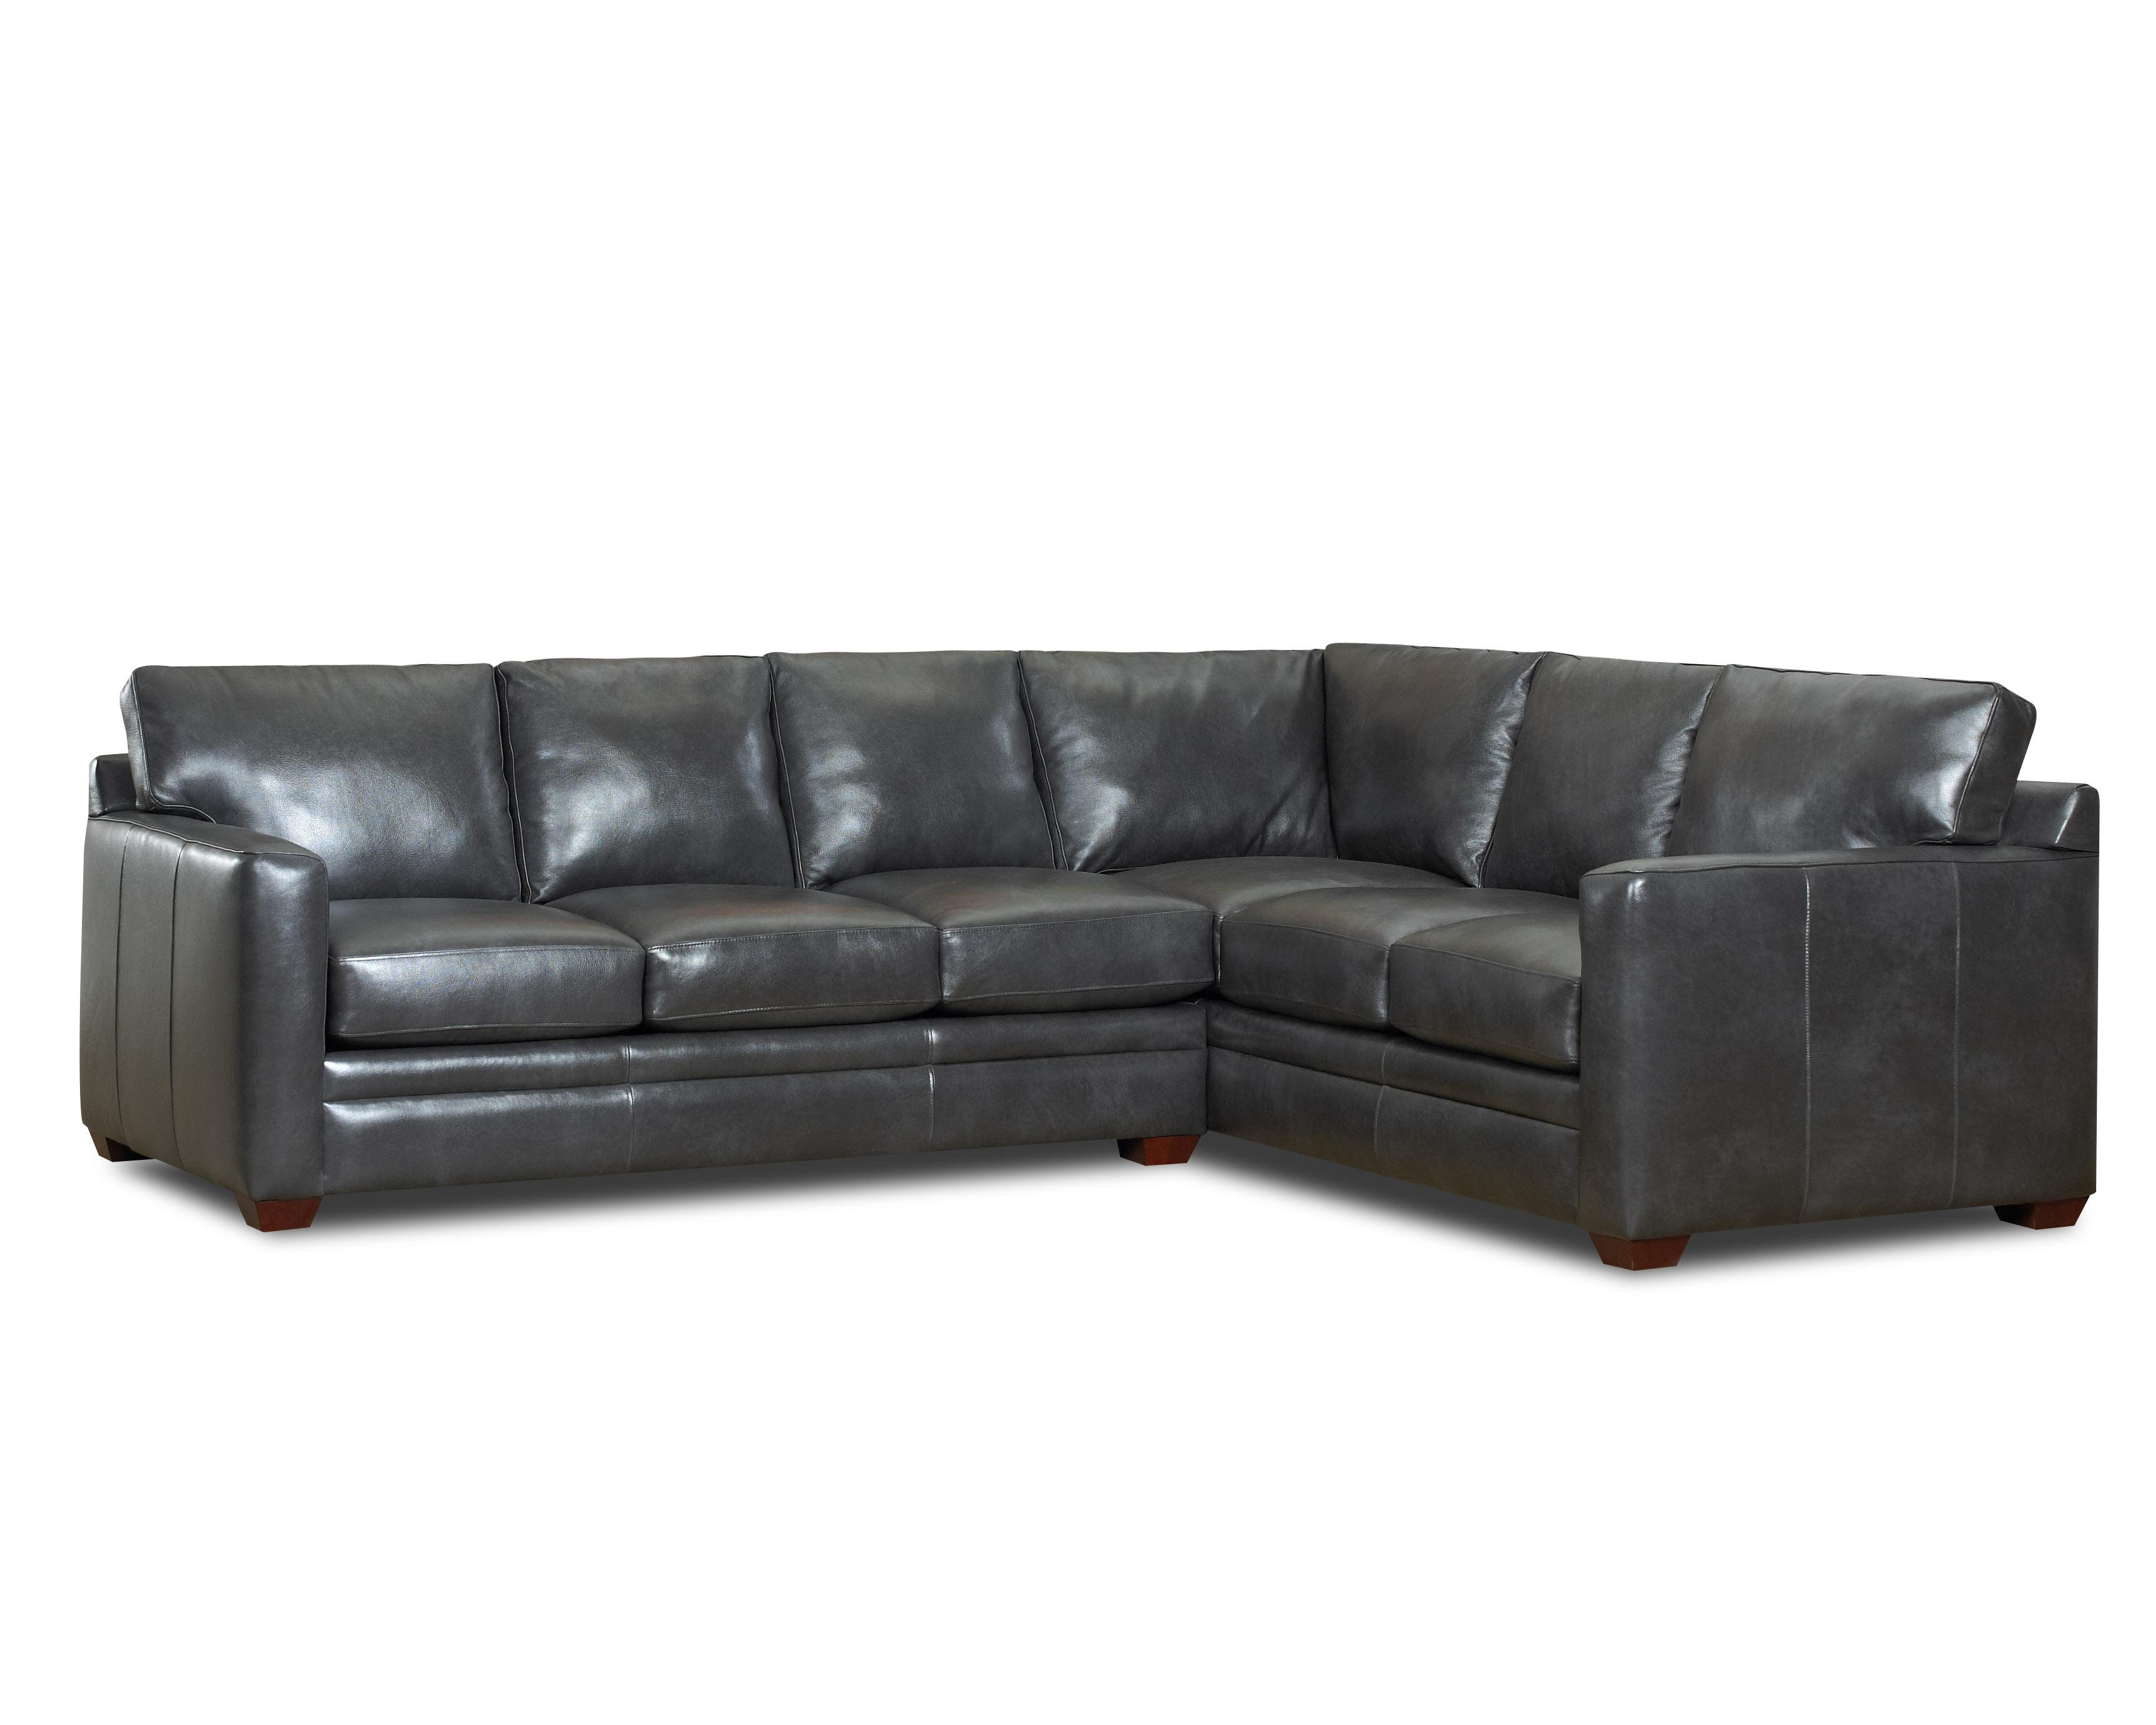 Most Recent Declan 3 Piece Power Reclining Sectionals With Right Facing Console Loveseat For Unique Klaussner Leather Sectional Sofa – Sofas (View 16 of 20)